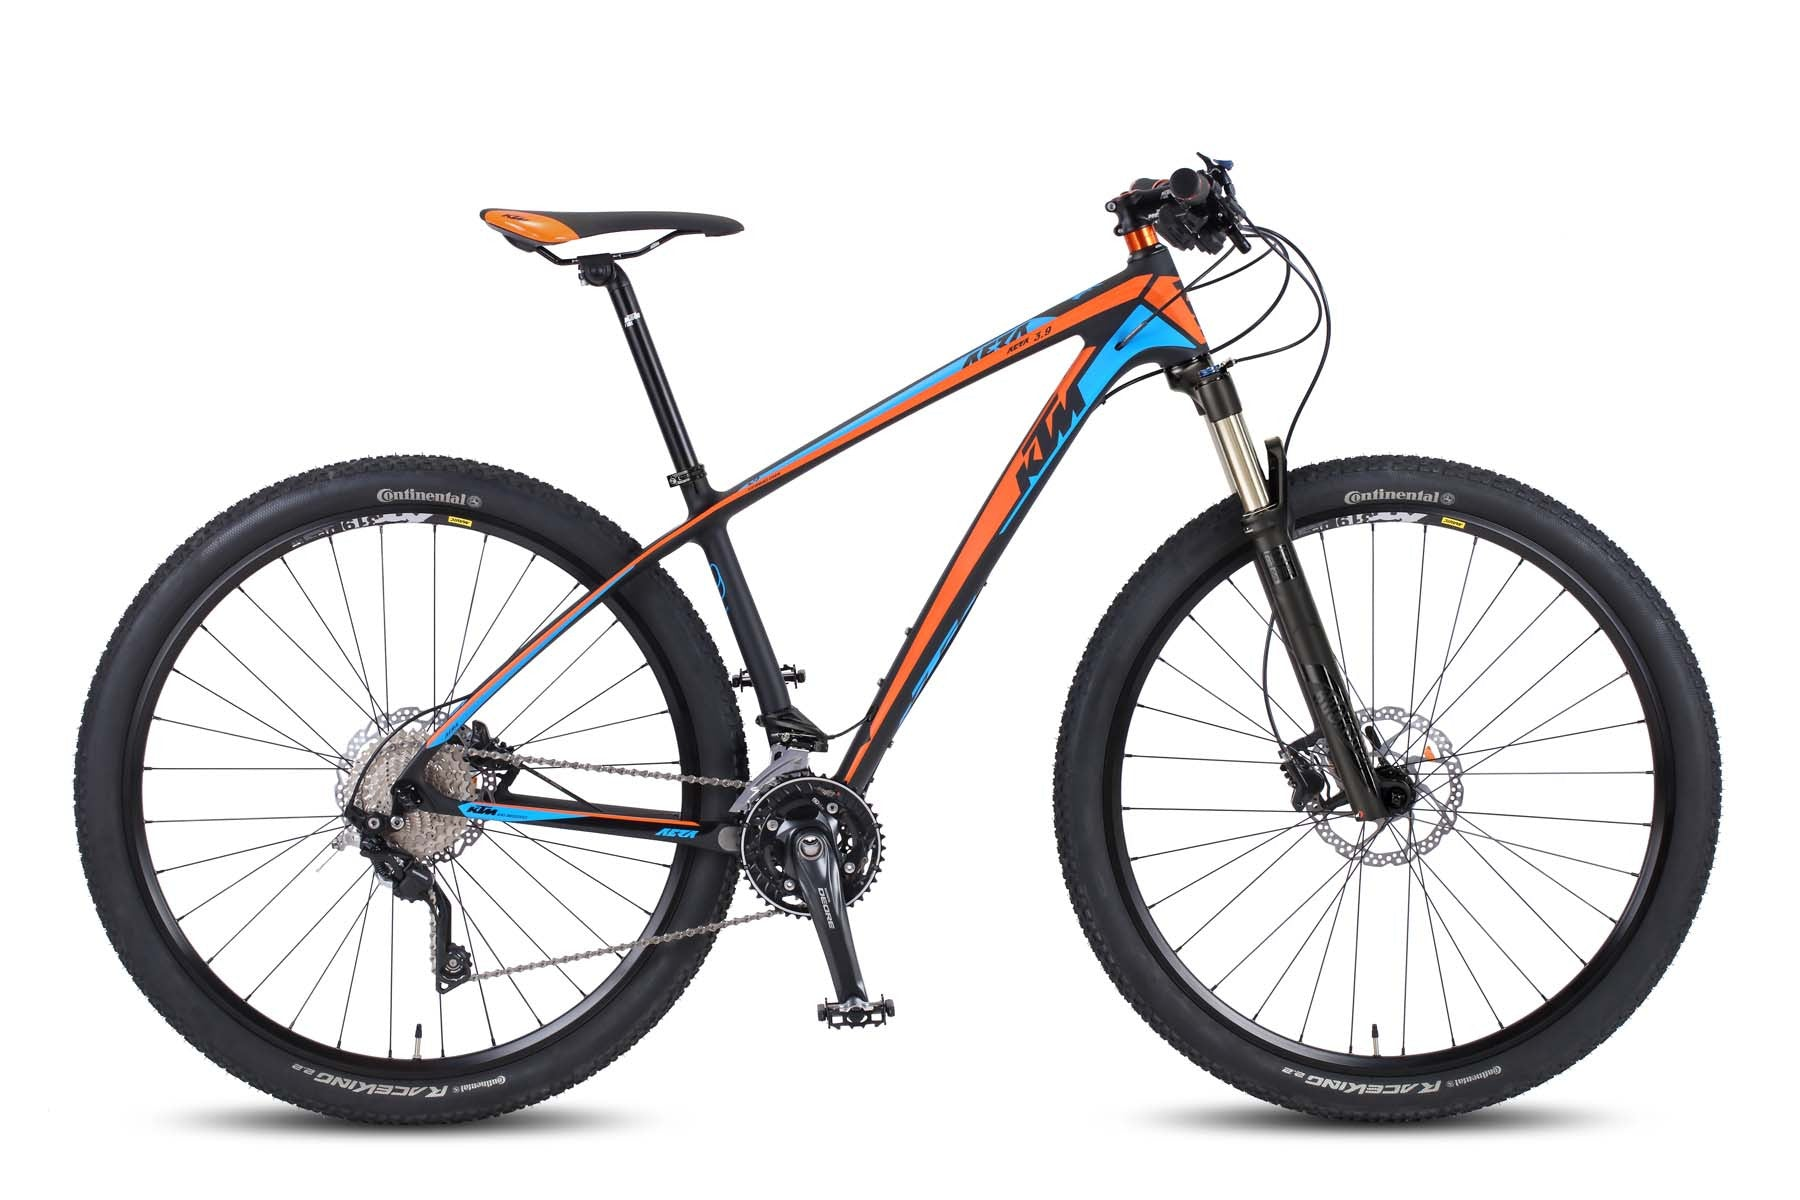 Ktm Aera 3 9 Rs Carbon Ktm Bike Industries